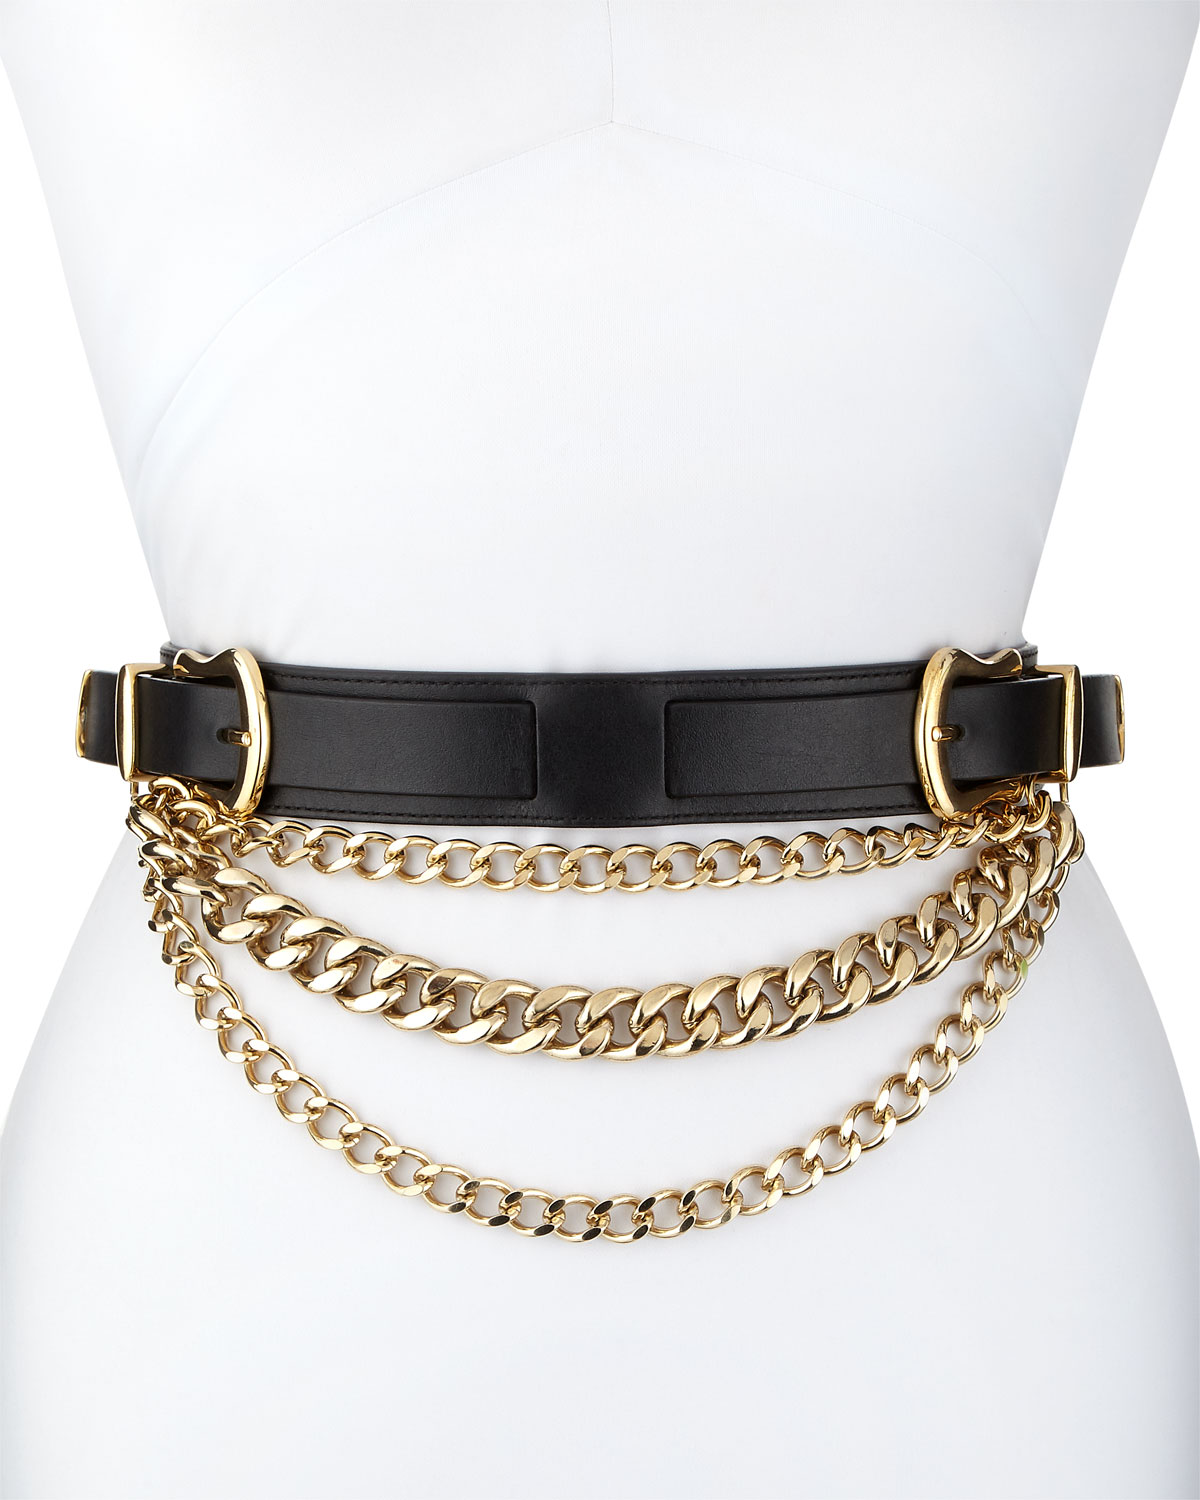 Linette Vanchetta Double-Buckle Leather Belt With Chains in Black/Gold